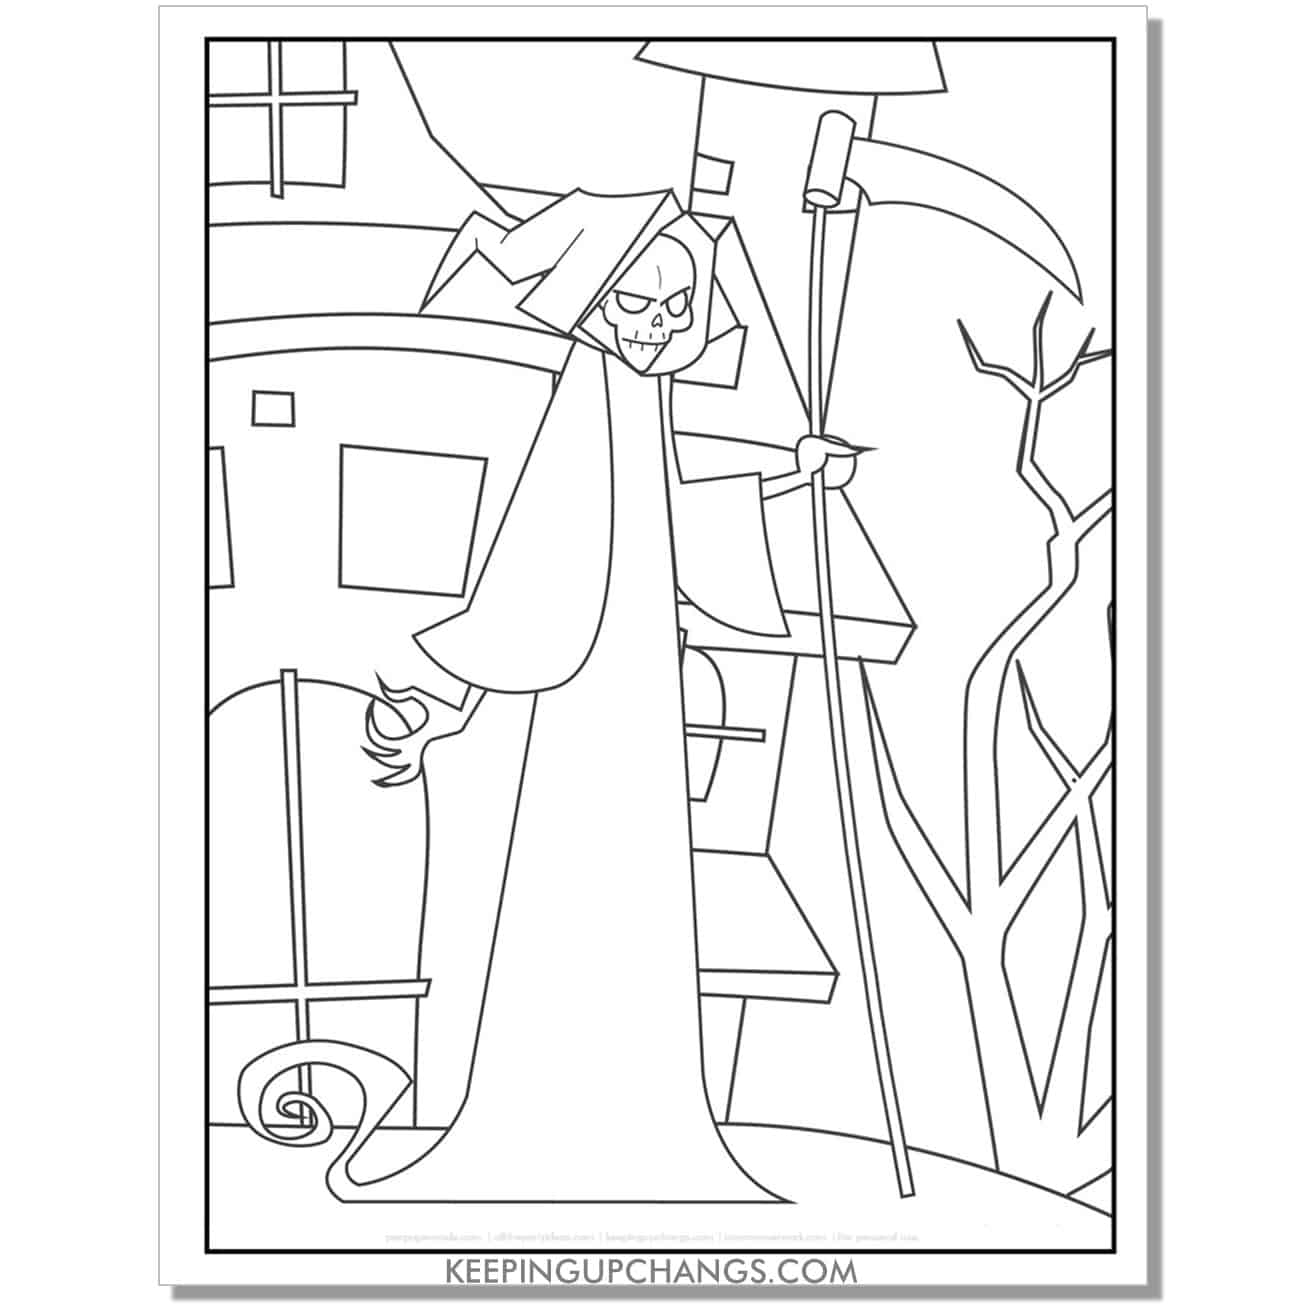 free grim reaper in front of haunted house coloring page.